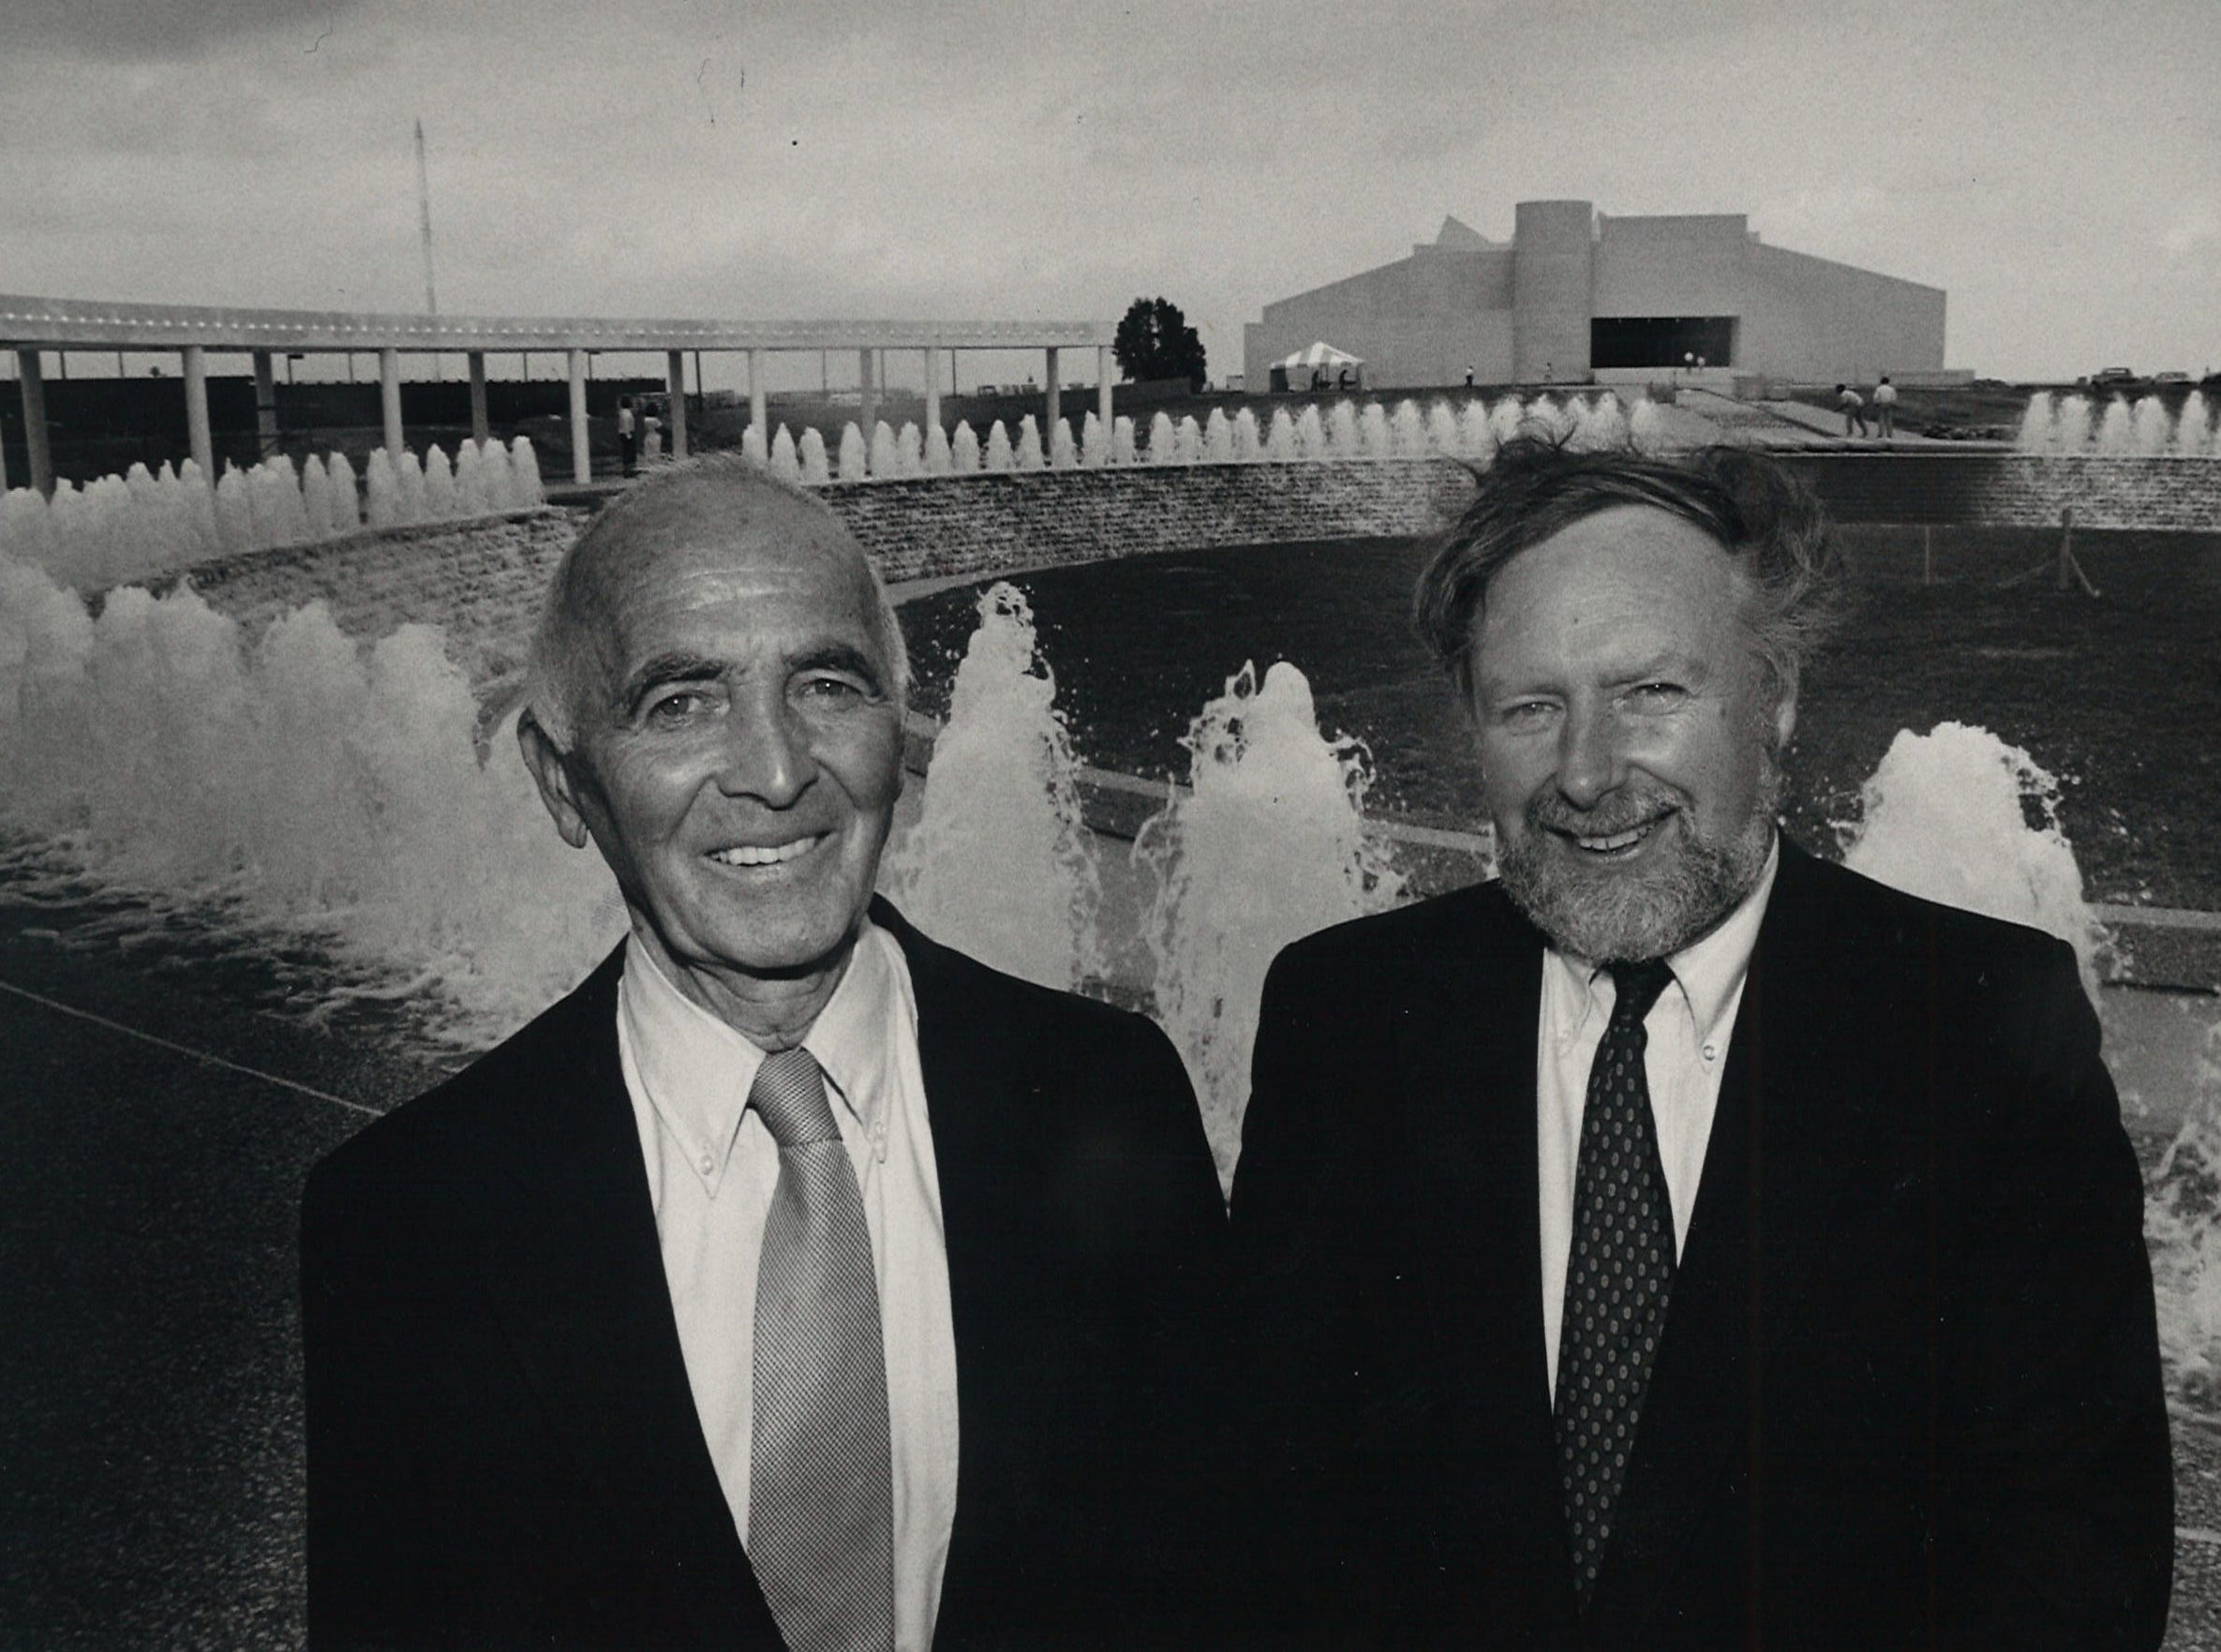 Robert Zion (left), architect of the Watergarden, and associate Donald C. Richardson (right), stand in front of the Watergarden May 12, 1988.